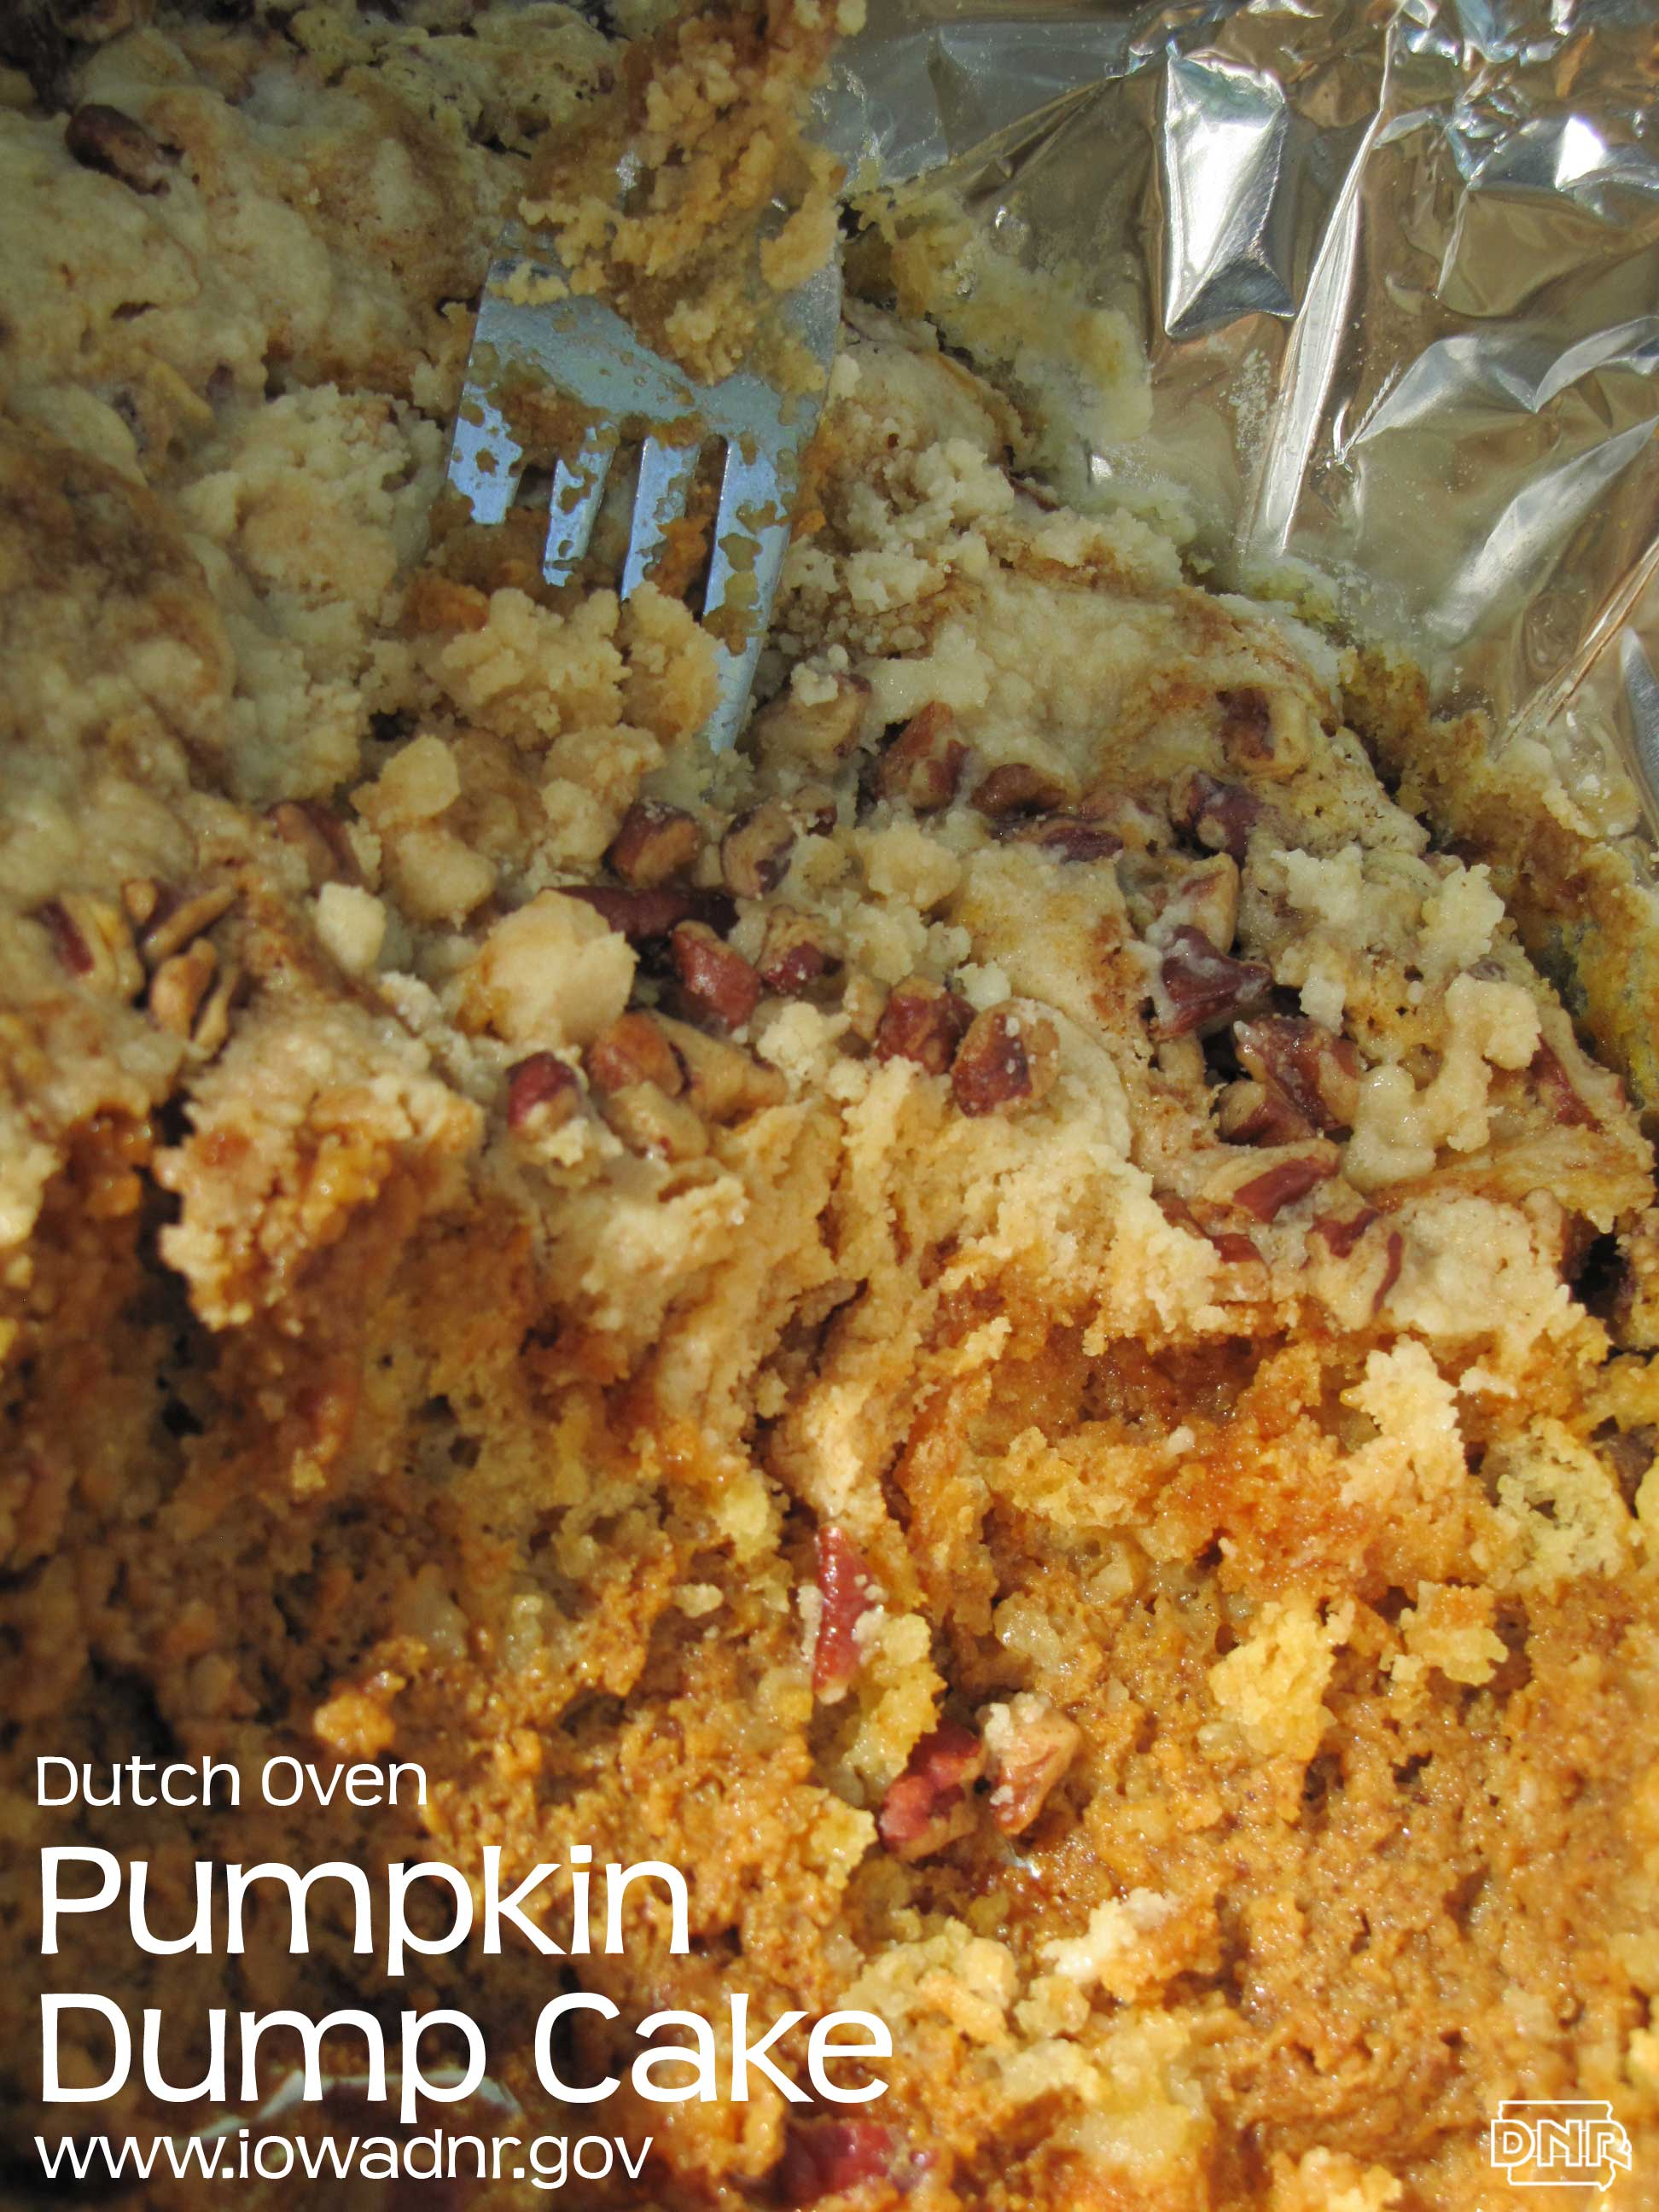 Dutch oven pumpkin dump cake recipe from the Iowa DNR